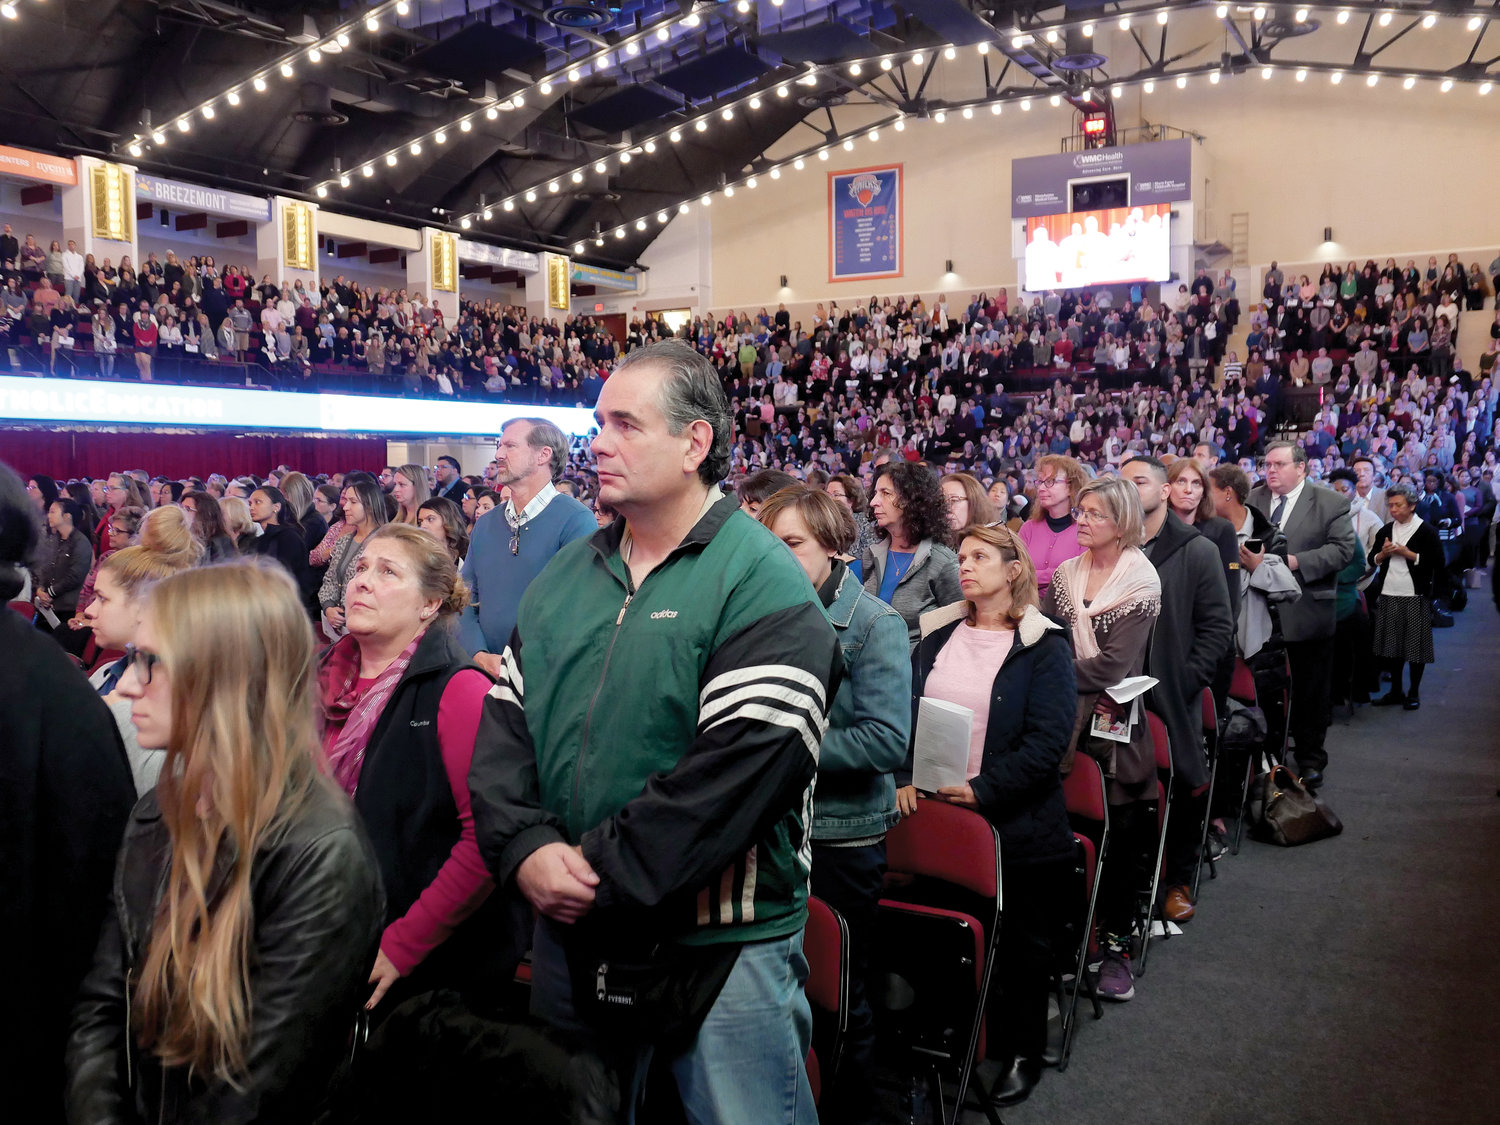 The crowd of 3,562 teachers and principals from the Archdiocese of New York, fill the Westchester County Center in White Plains Nov. 6 for the Catholic Schools Spirituality Day.